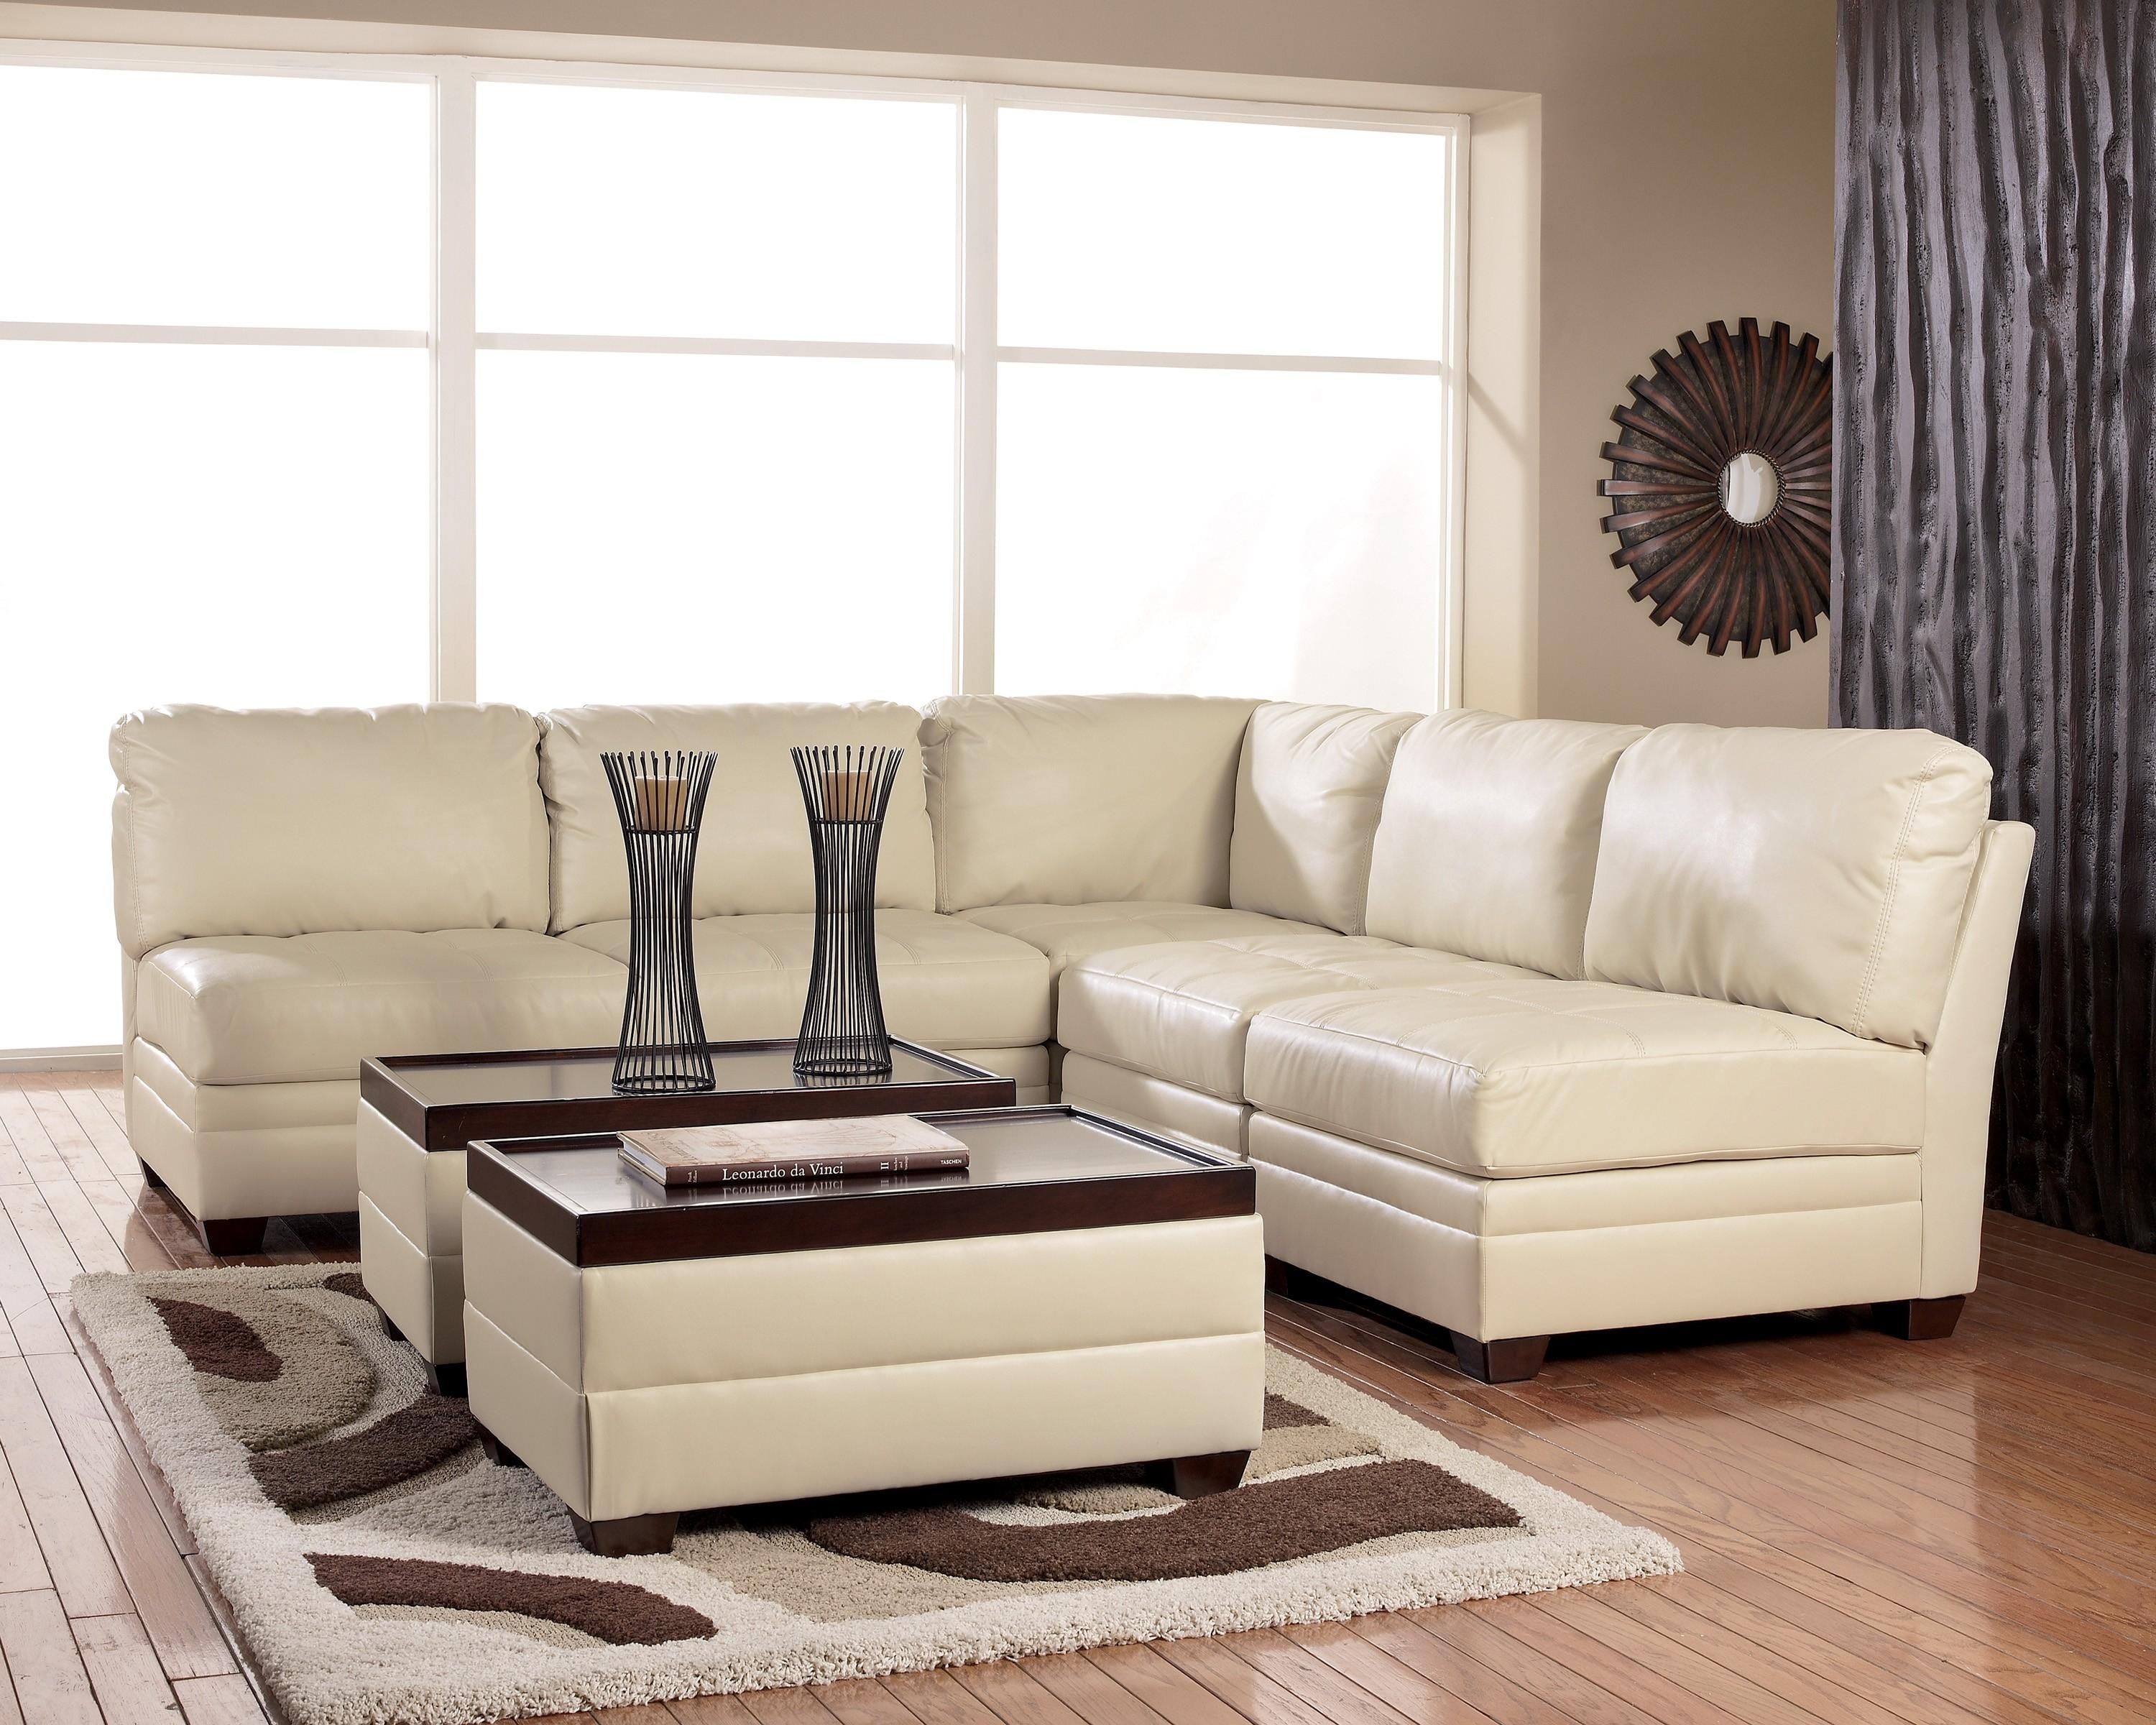 Sofas Center : Sectional Sofas Ashley Furniture Faux Leather Sofa In Faux Leather Sectional Sofas (Image 10 of 15)